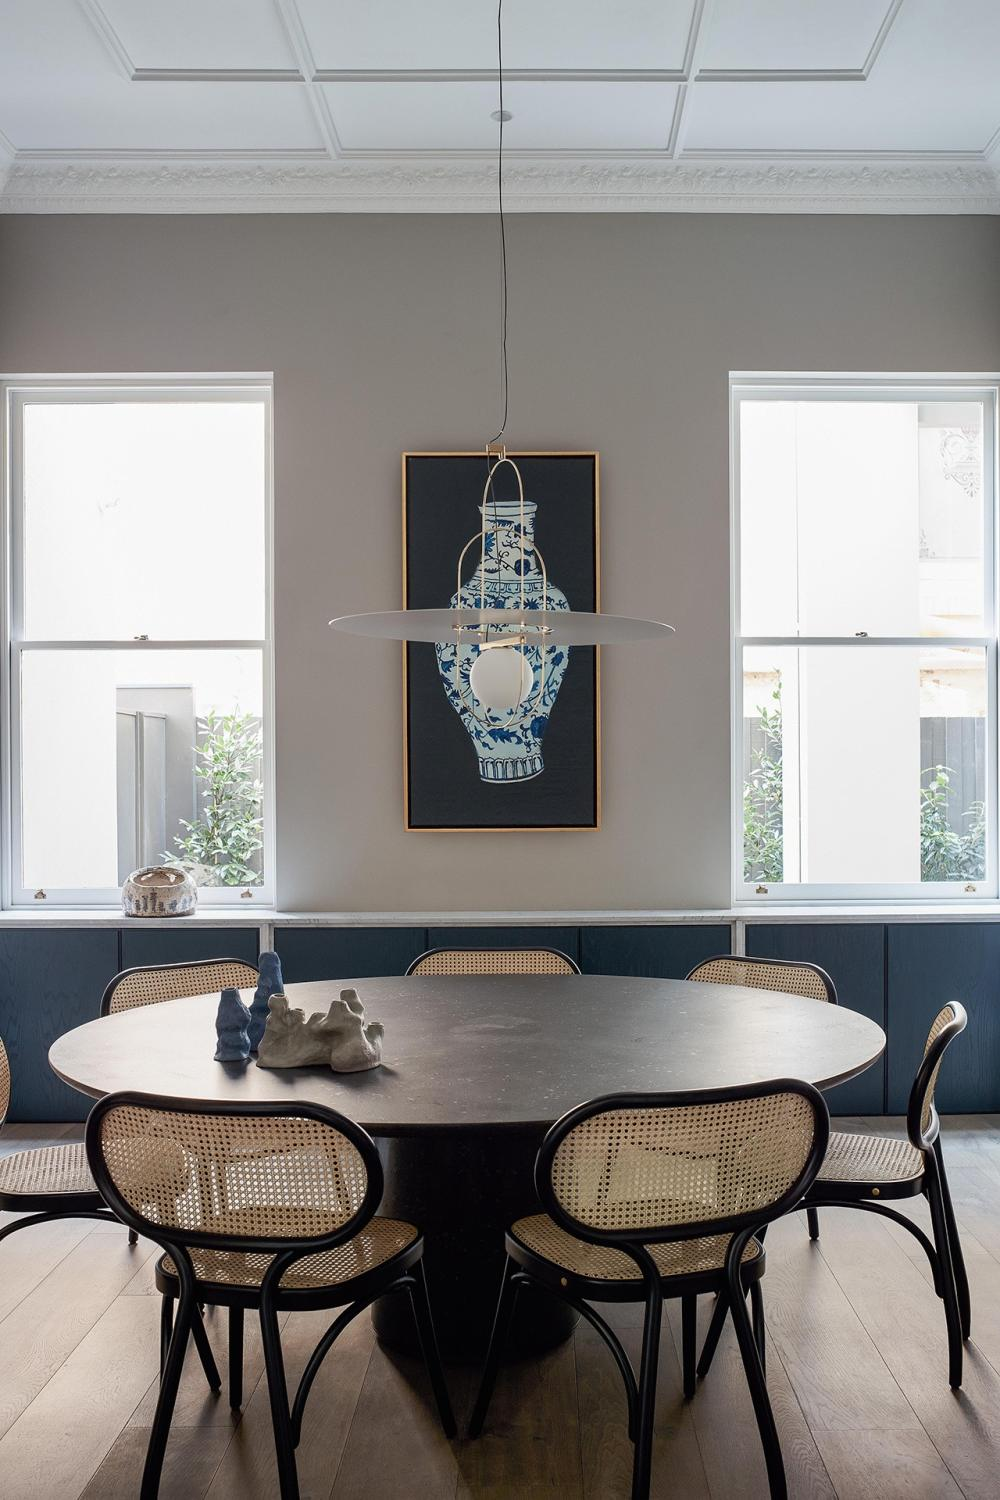 House tour: an elegant heritage Melbourne home restored with a moody colour palette-3.jpg